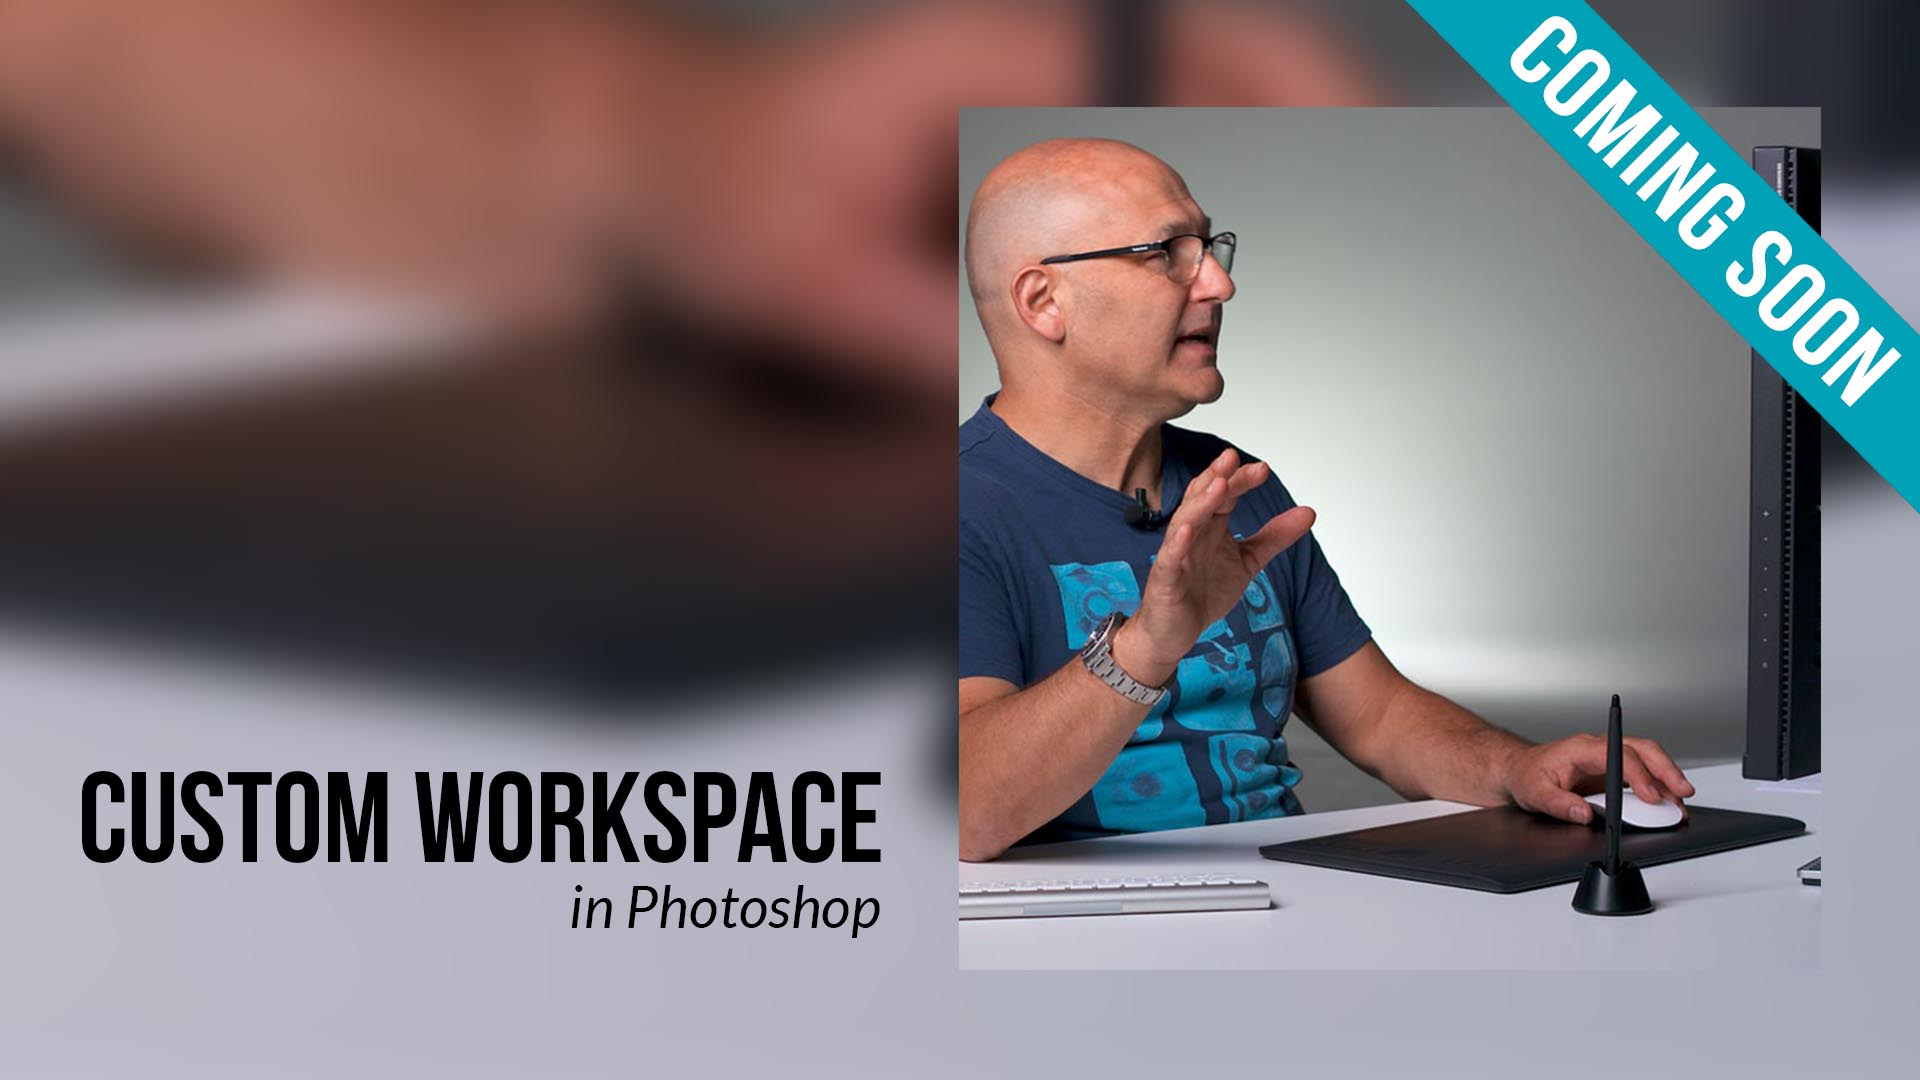 How to create a custom workspace in Photoshop